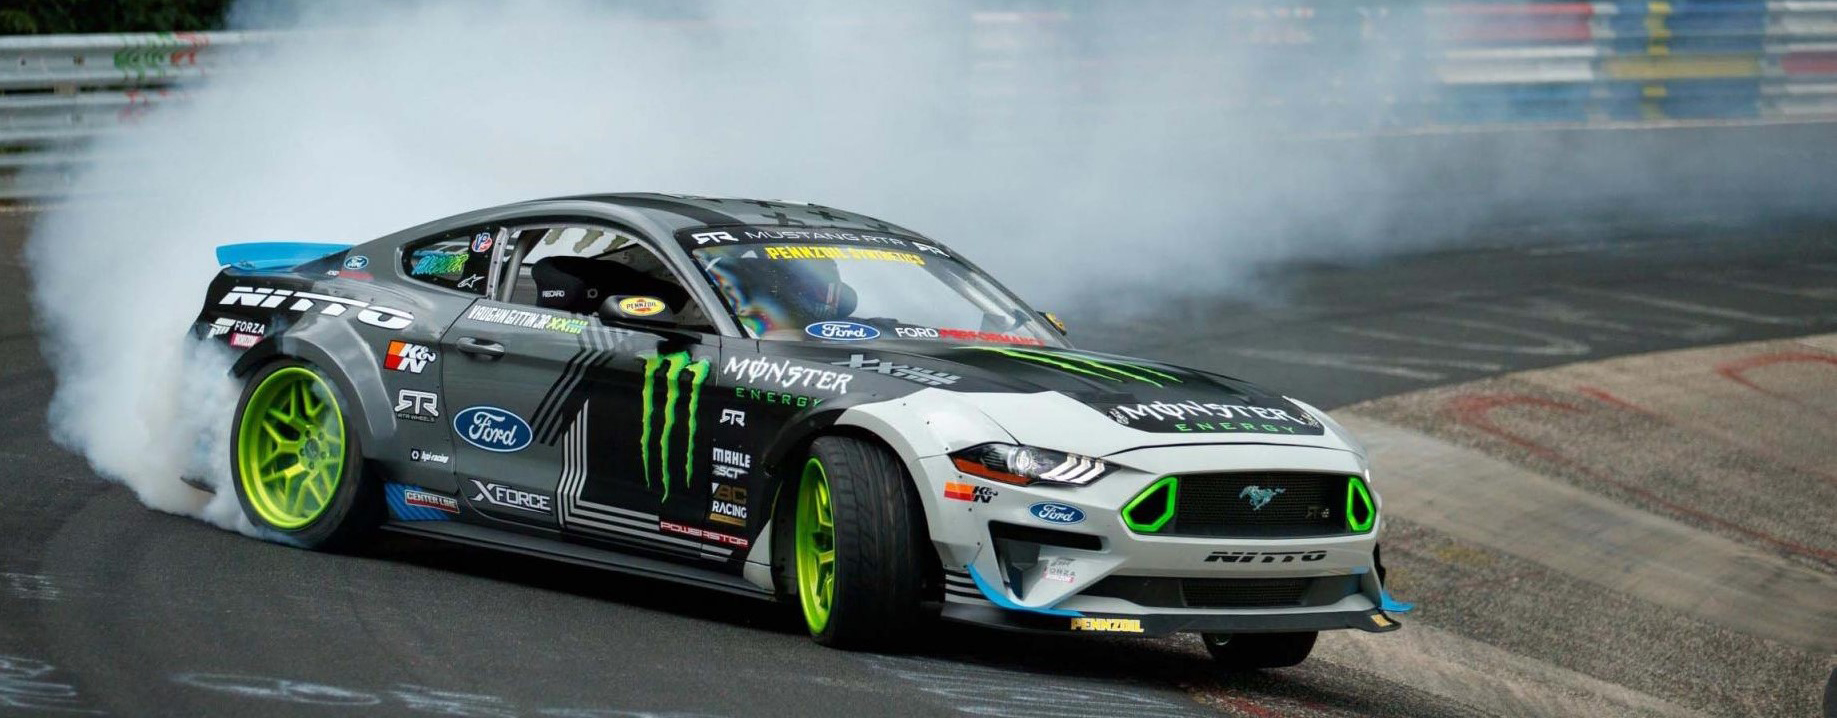 TrackWorthy - Vaughn Gittin Jr. Drifts The Nurburgring Nordschleife (2)